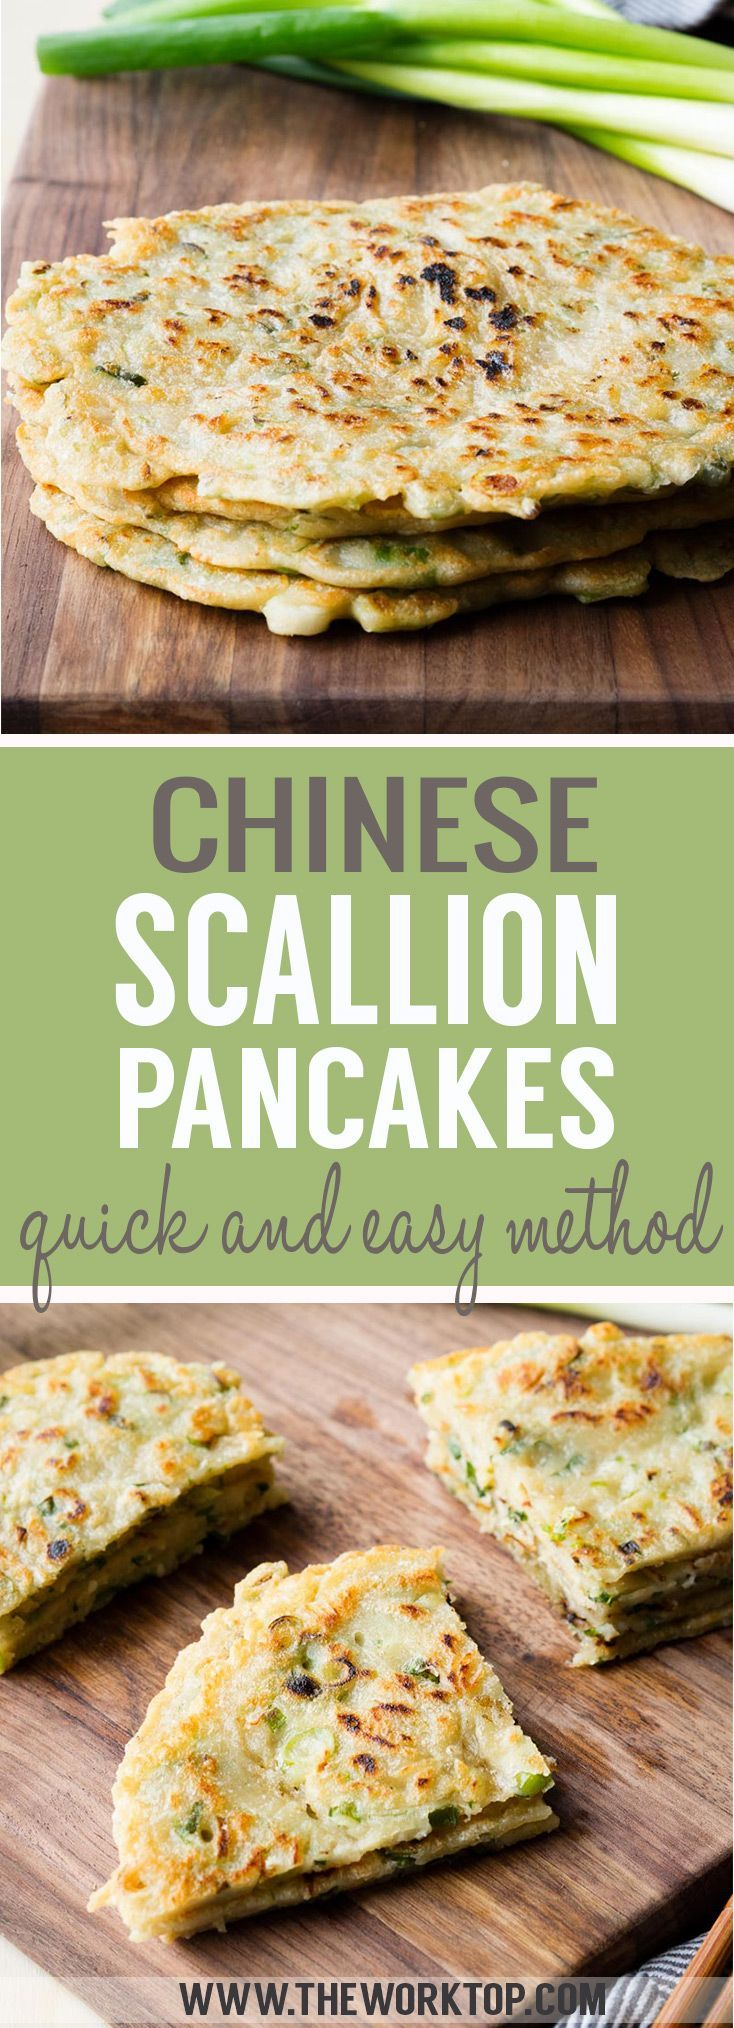 Quick Chinese Scallion Pancakes (Vegan) - Same delicious taste as a traditional Chinese green onion pancake, but get these on the stove top within 5 mins. Recipe from www.theworktop.com. #asianbreakfast #savourypancakes #scallionpancakes